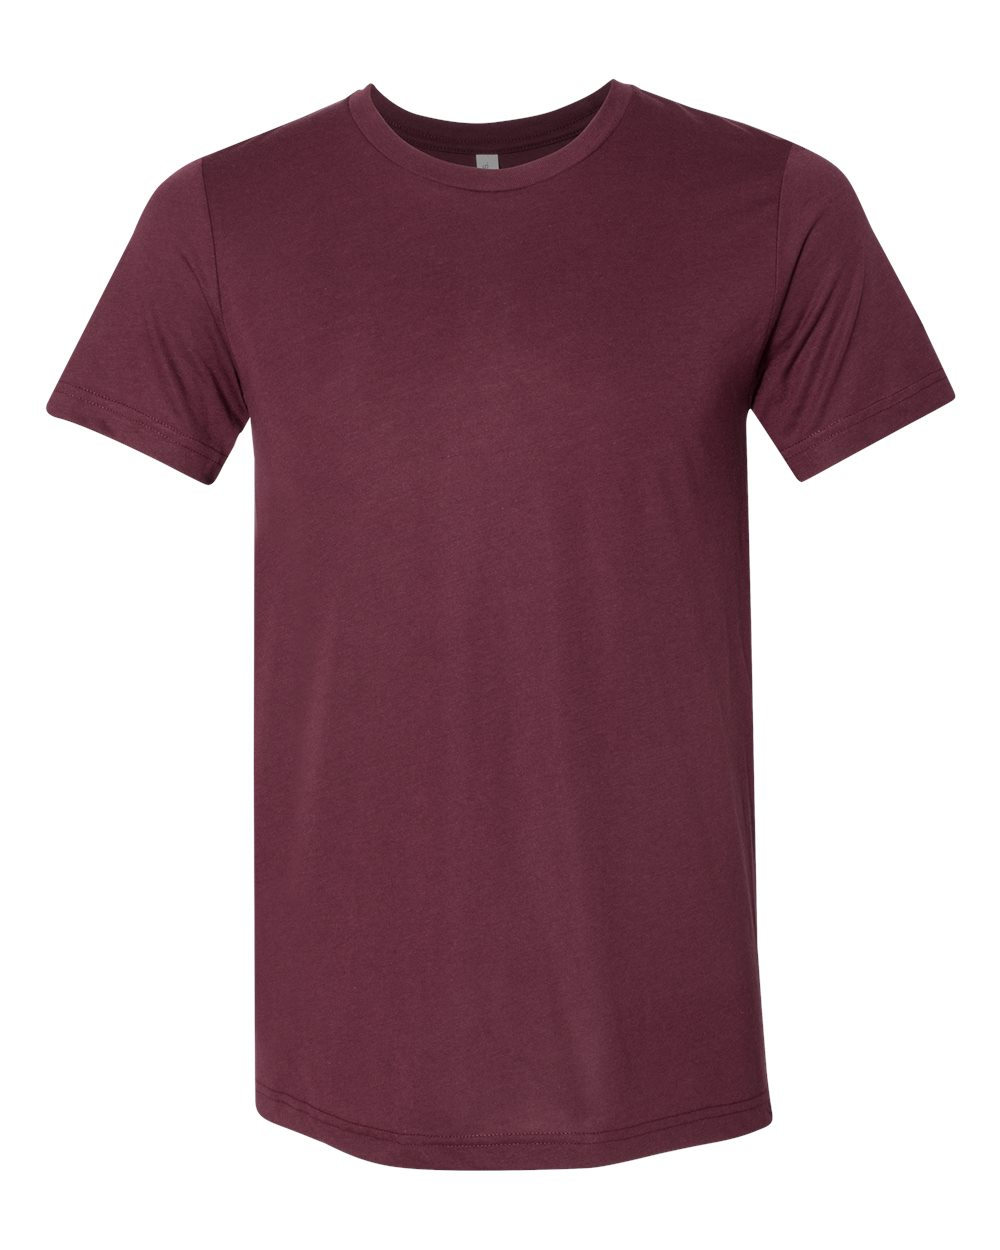 click to view Solid Maroon Triblend